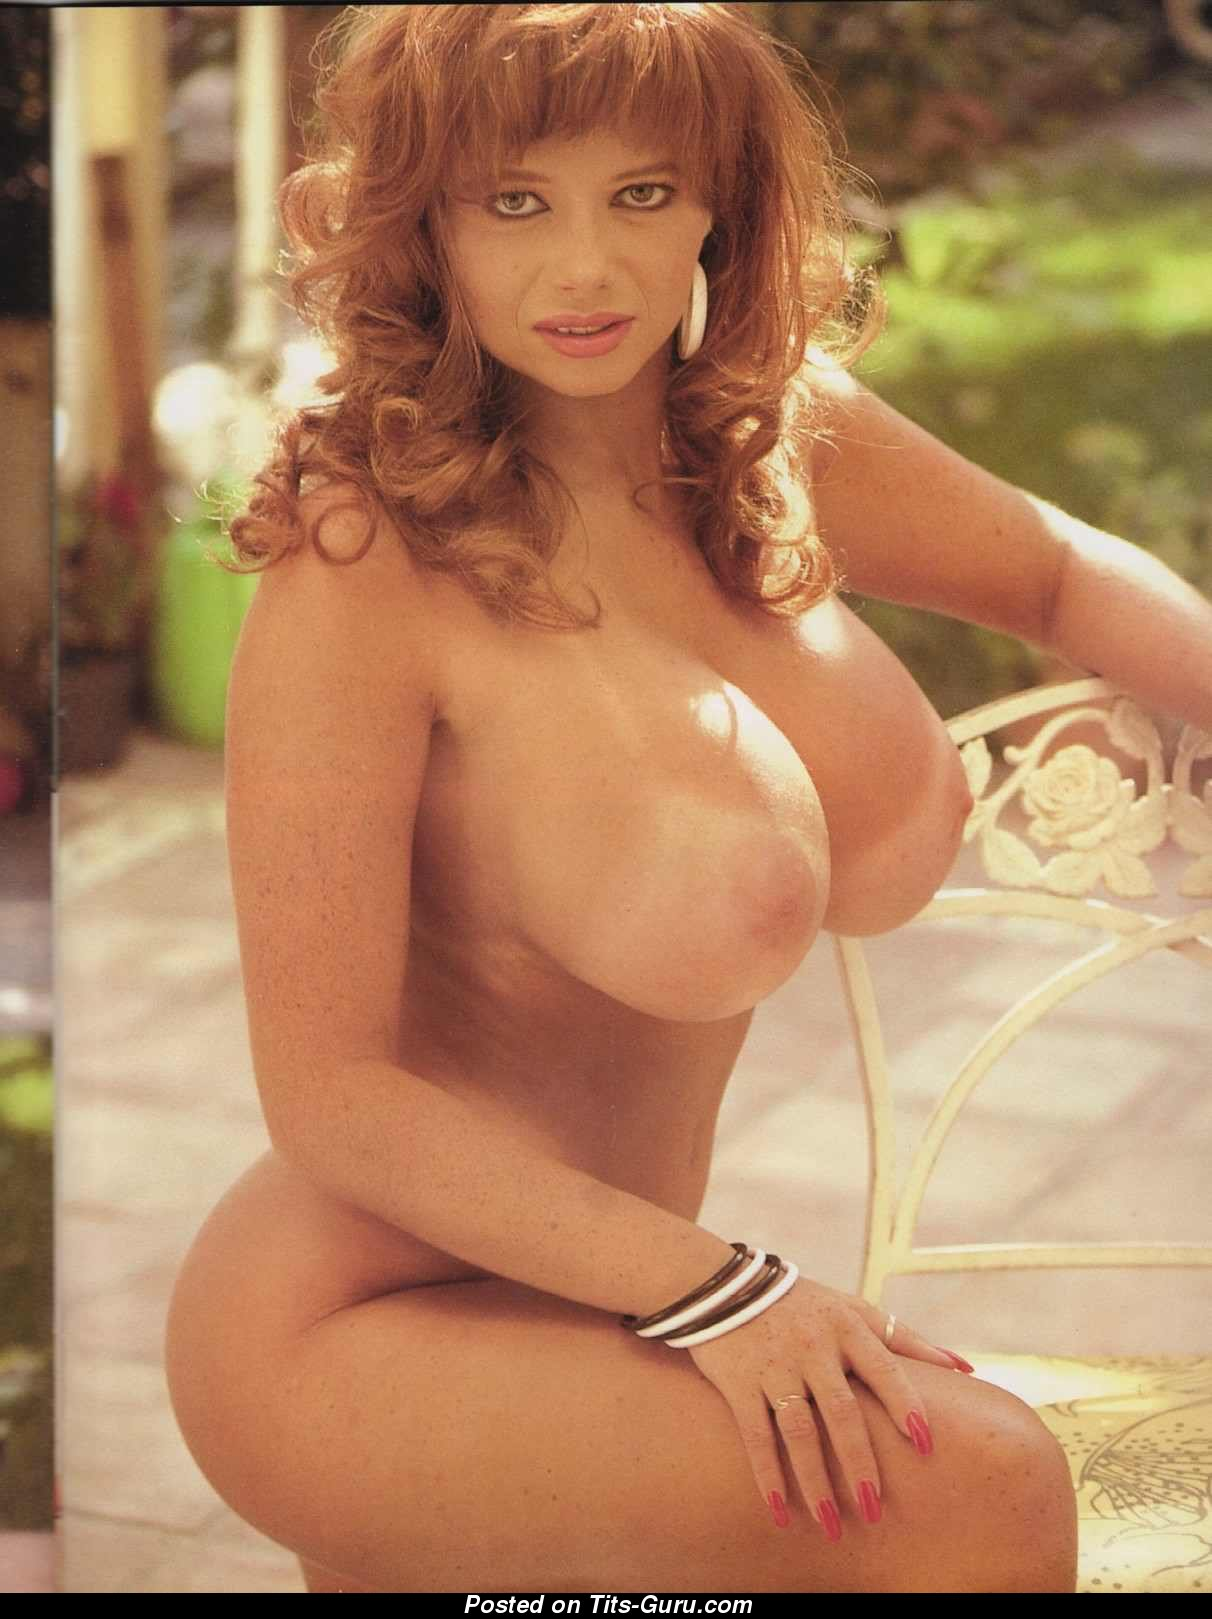 adult video chat programs reviews